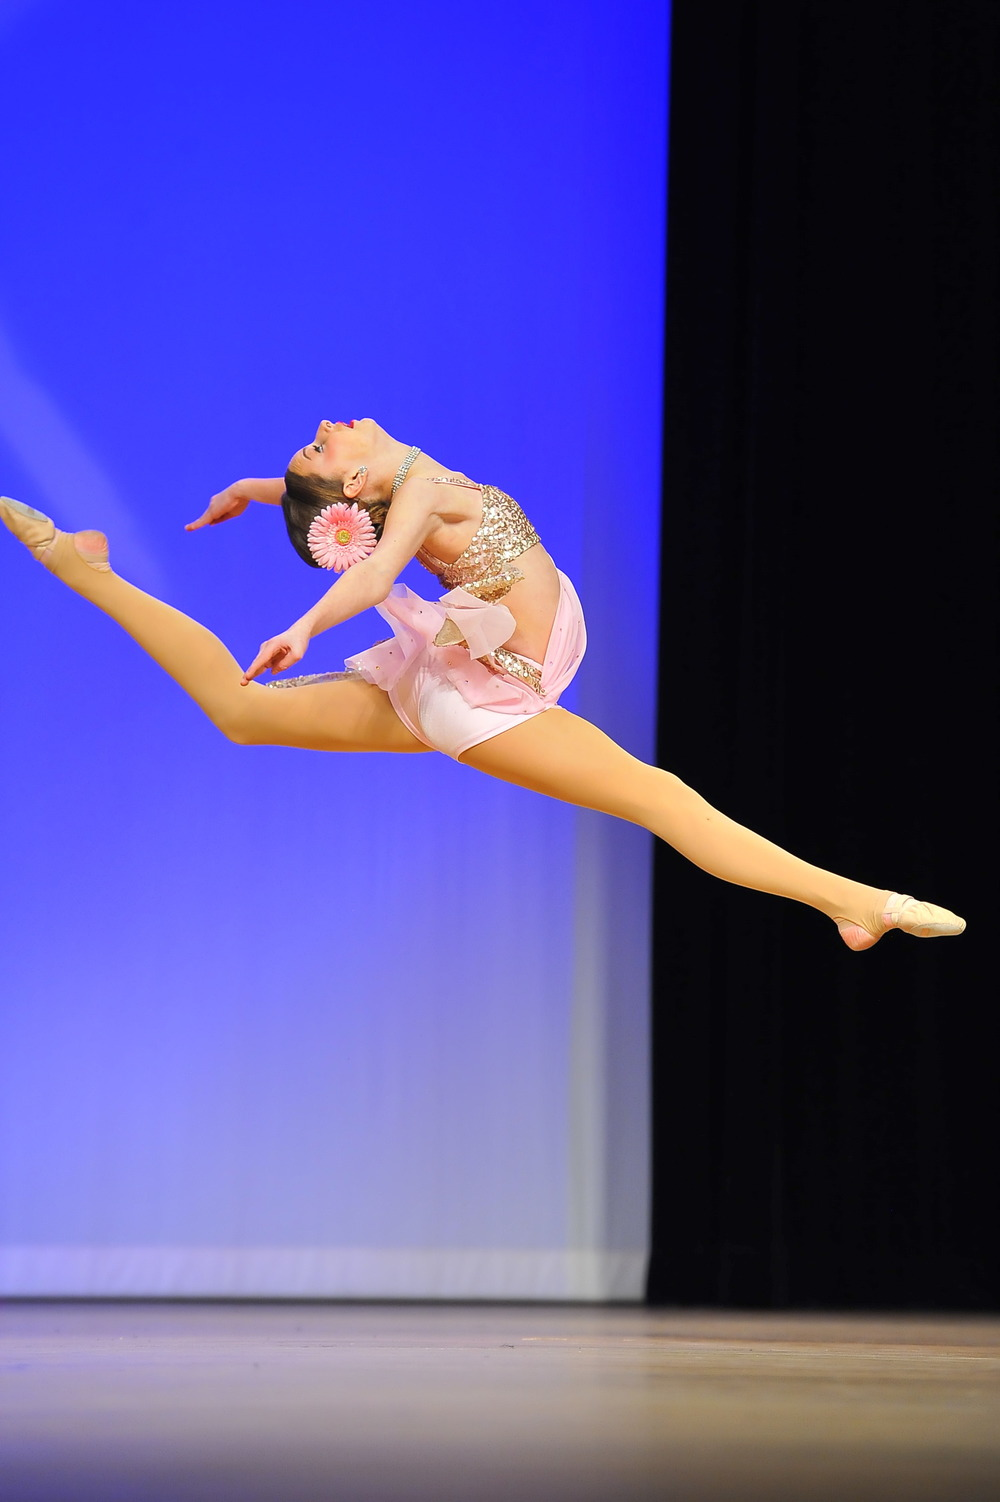 2013 - Allison Guse from Arabesque School of Dance